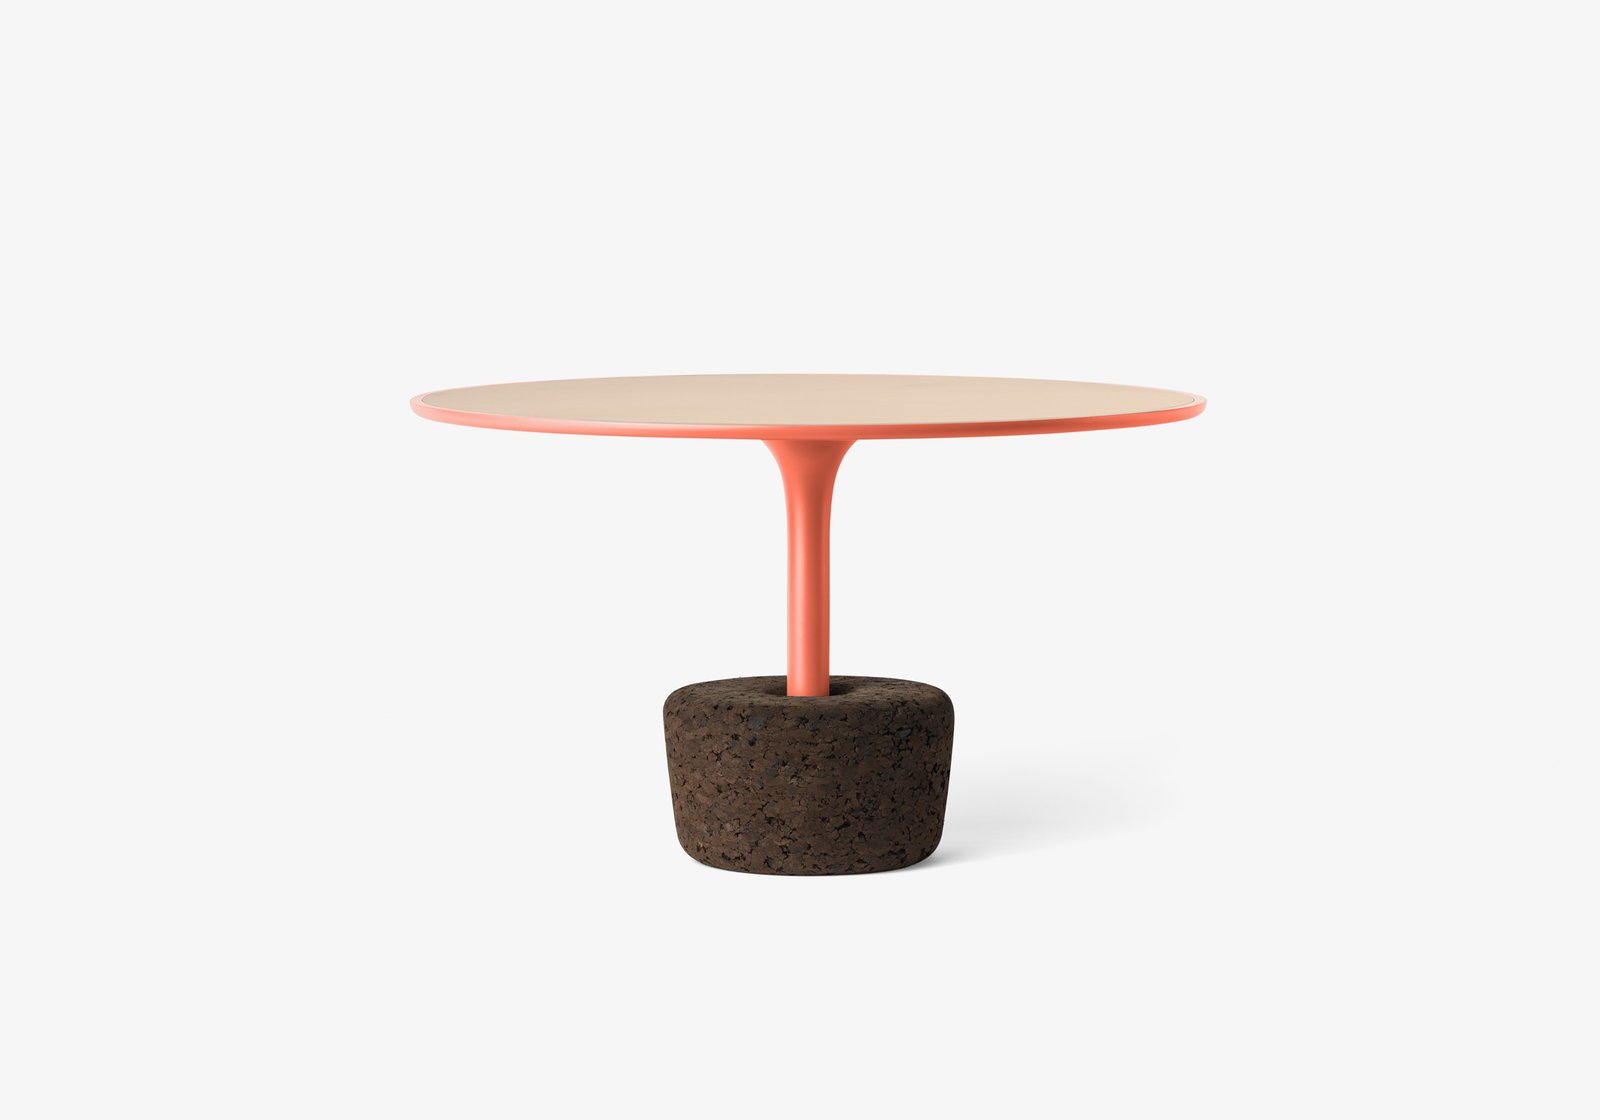 "Flora Wide Tall  FLORA is a set of coffee tables that refers to the plants we offer to the ones we love, so there is a similarity between taking care of plants and taking care of the objects. These versatile tables combine natural materials, with four sizes and six different colored frame finishes and may be used separately or together.  Size  Ø65 x H38 cm / Ø25,6'' x H15''.  Weight  5,8 kg / 12,8 lbs.  Search ""역촌동출장안마【Ø1Ø↔59Ø6↔5334】⊀후불결제⊁역촌동출장아가씨추천 역촌동콜걸출장안마후기 【S급매니저】역촌동콜걸출장마사지 역촌동출장샵강추 역촌동출장안마모텔7역촌동출장맛사지후기"" from Floras"